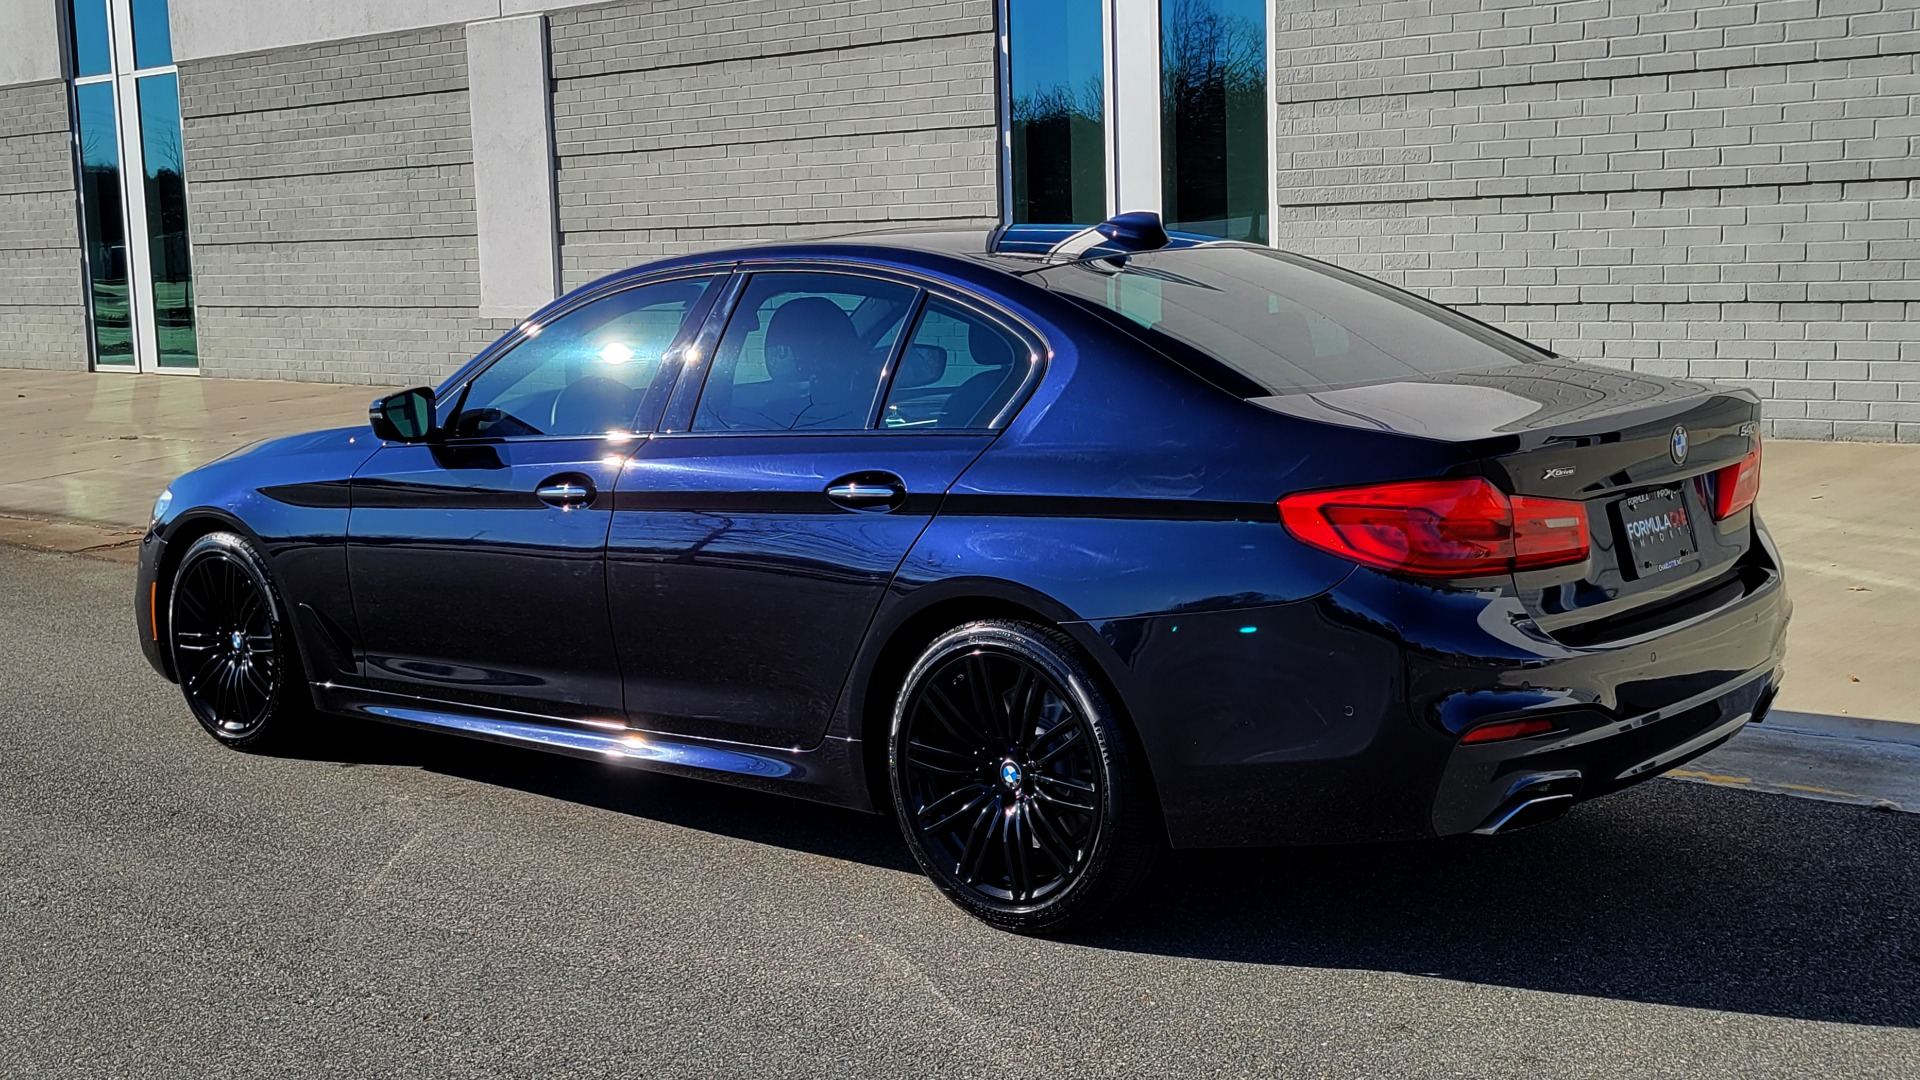 Used 2018 BMW 5 SERIES 540I XDRIVE / M-SPORT / NAV / WIFI / SUNROOF / REARVIEW for sale $36,773 at Formula Imports in Charlotte NC 28227 6